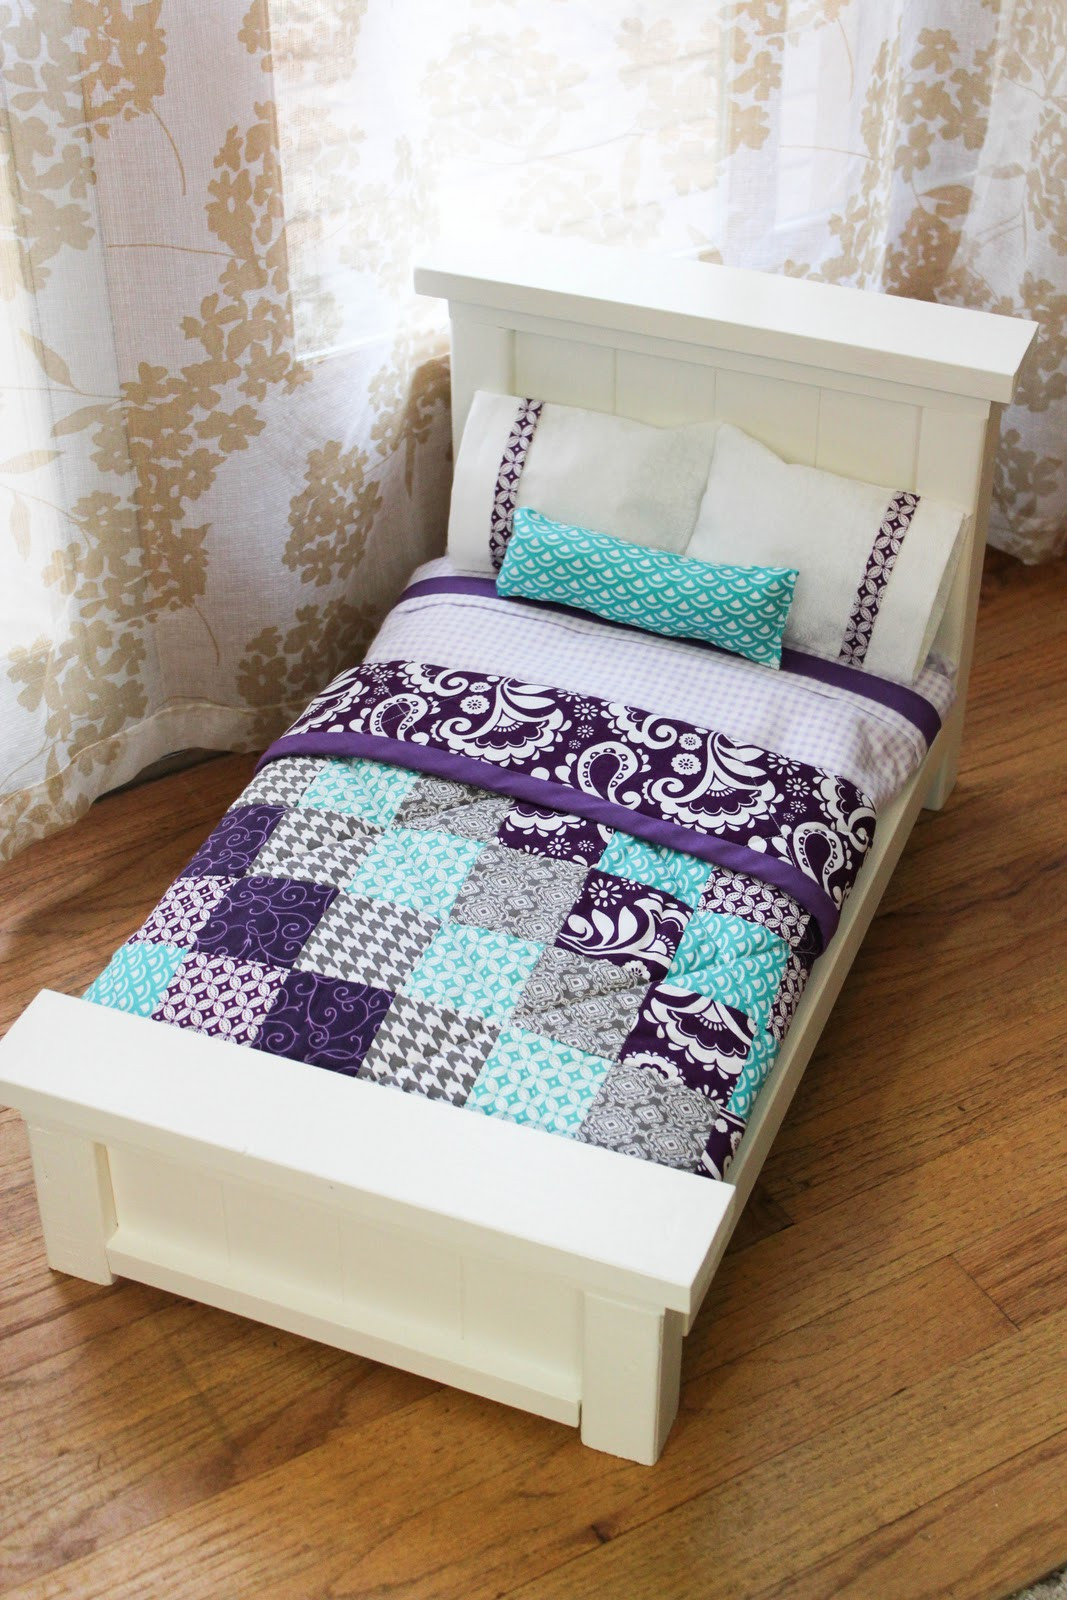 Best ideas about DIY Dolls Furniture . Save or Pin DIY Doll Beds and Tiny Quilts Now.